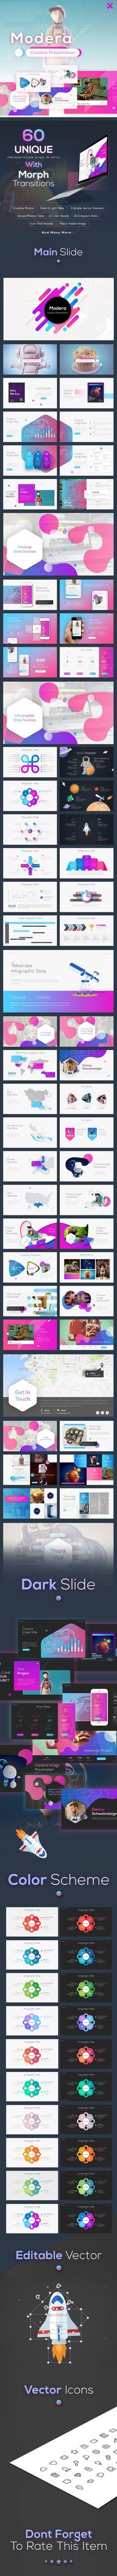 #Modera - #Creative #Presentation - Business PowerPoint Templates